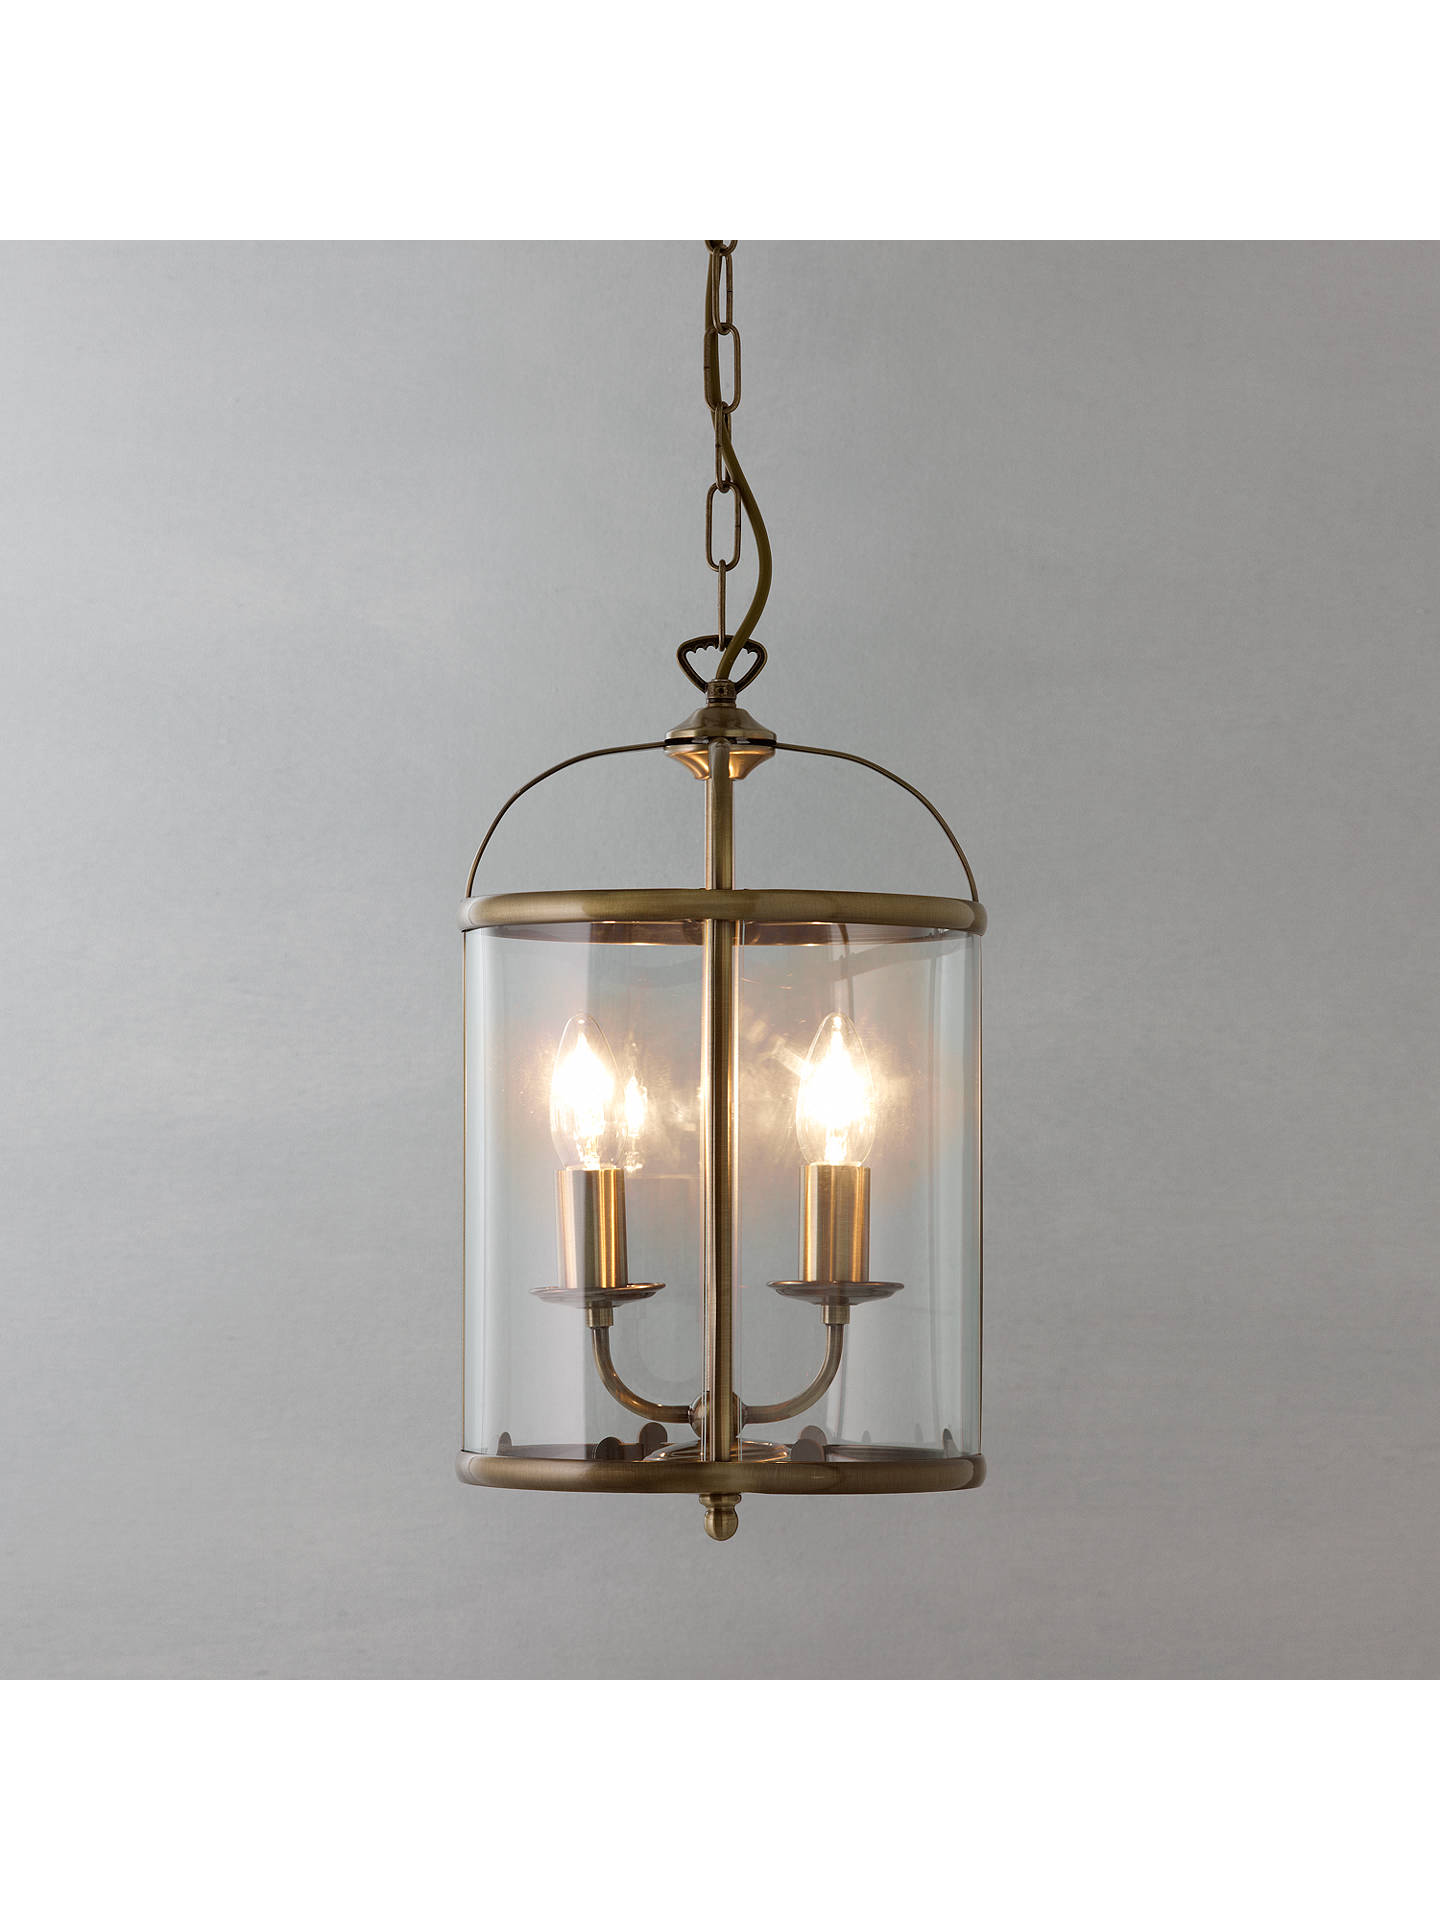 BuyJohn Lewis & Partners Walker Lantern Ceiling Light Online at johnlewis.com